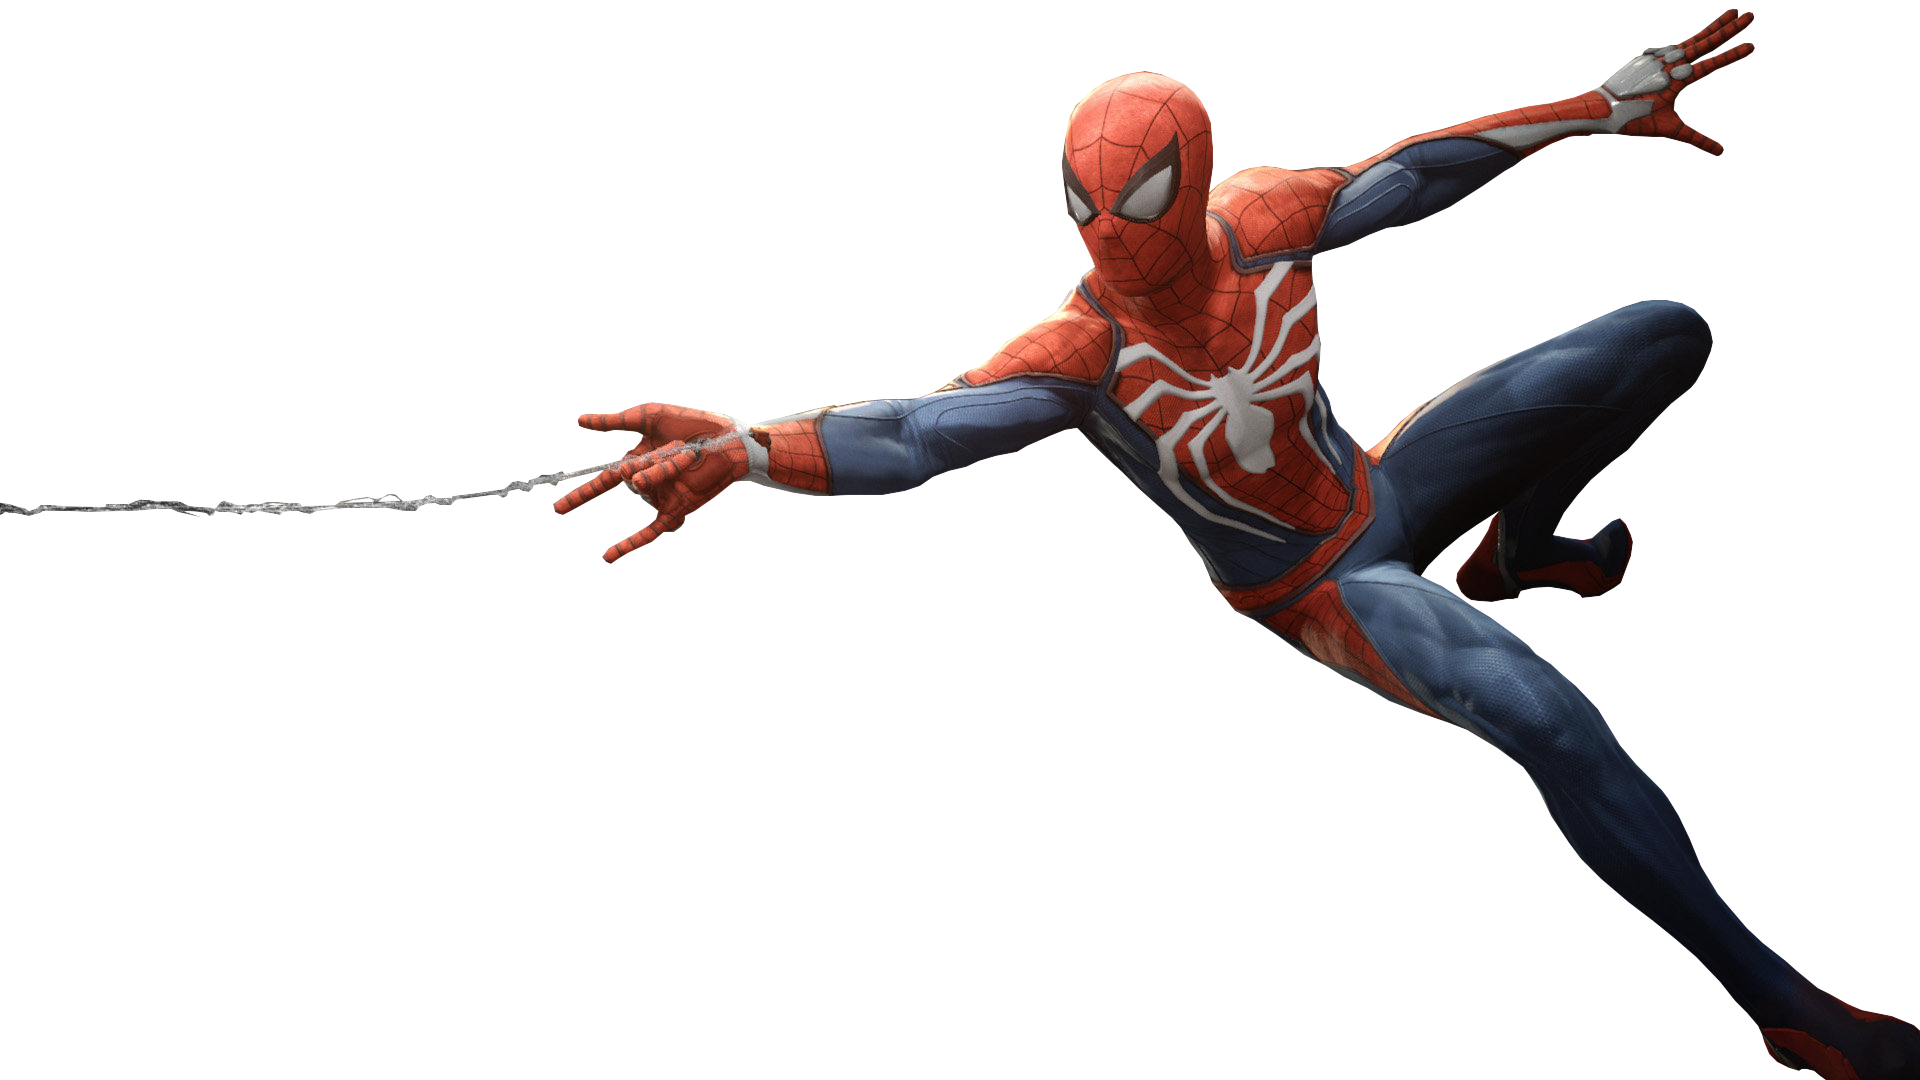 Spiderman web shooter png. Spider man the crossover